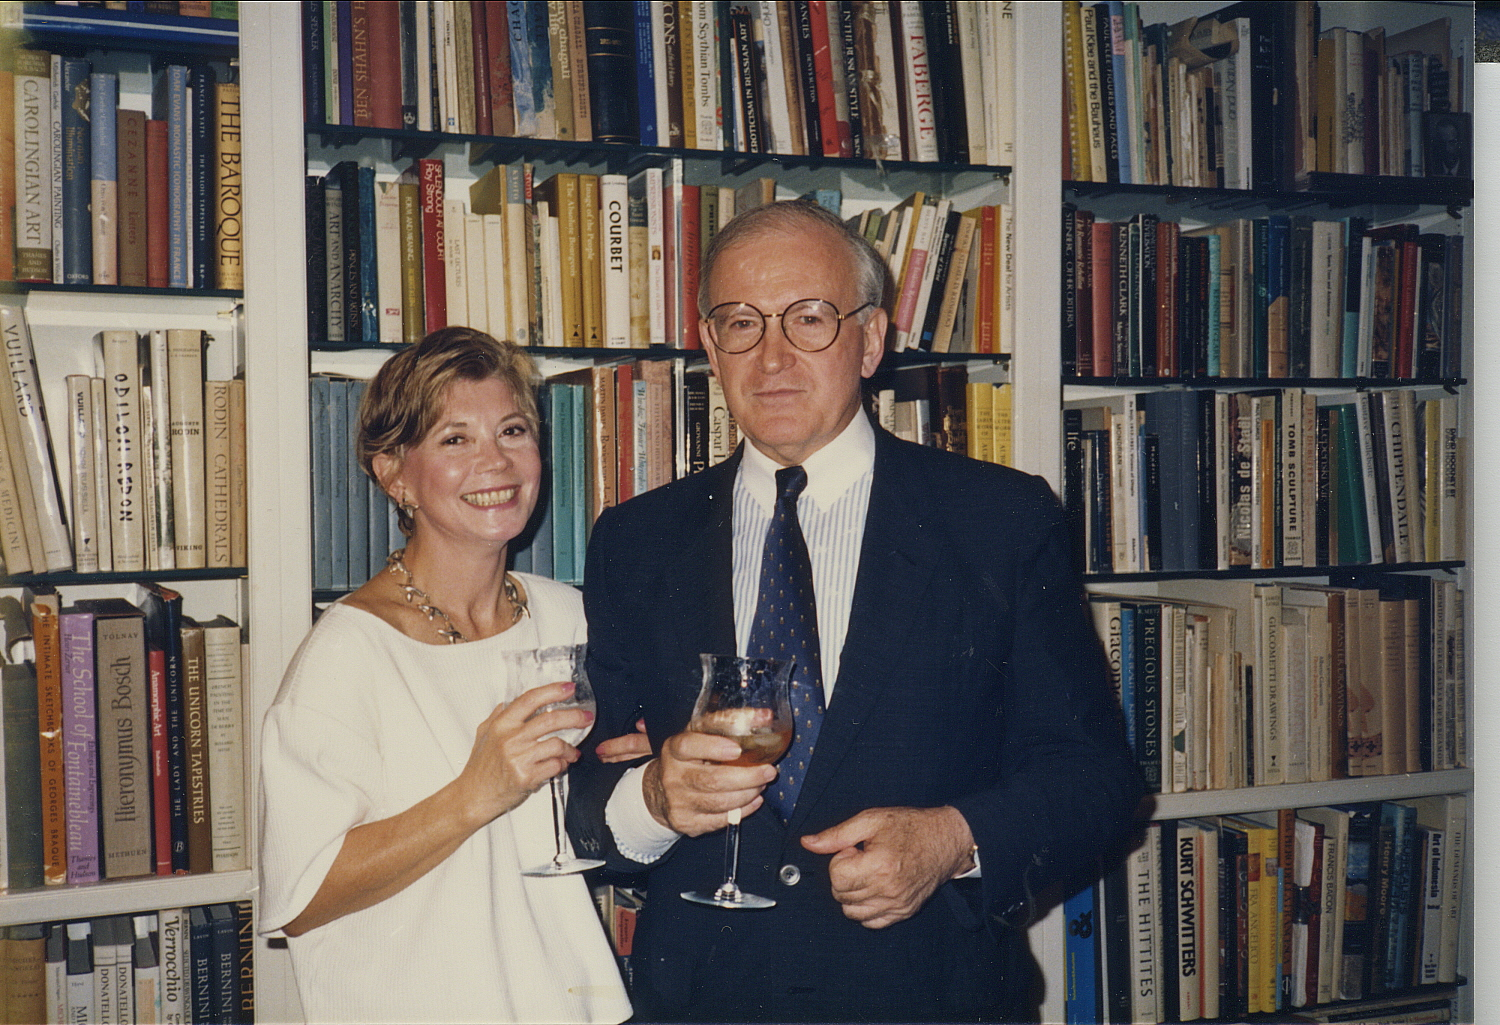 Robert Craft (right) with his wife at their home in Florida, circa early 1990s.